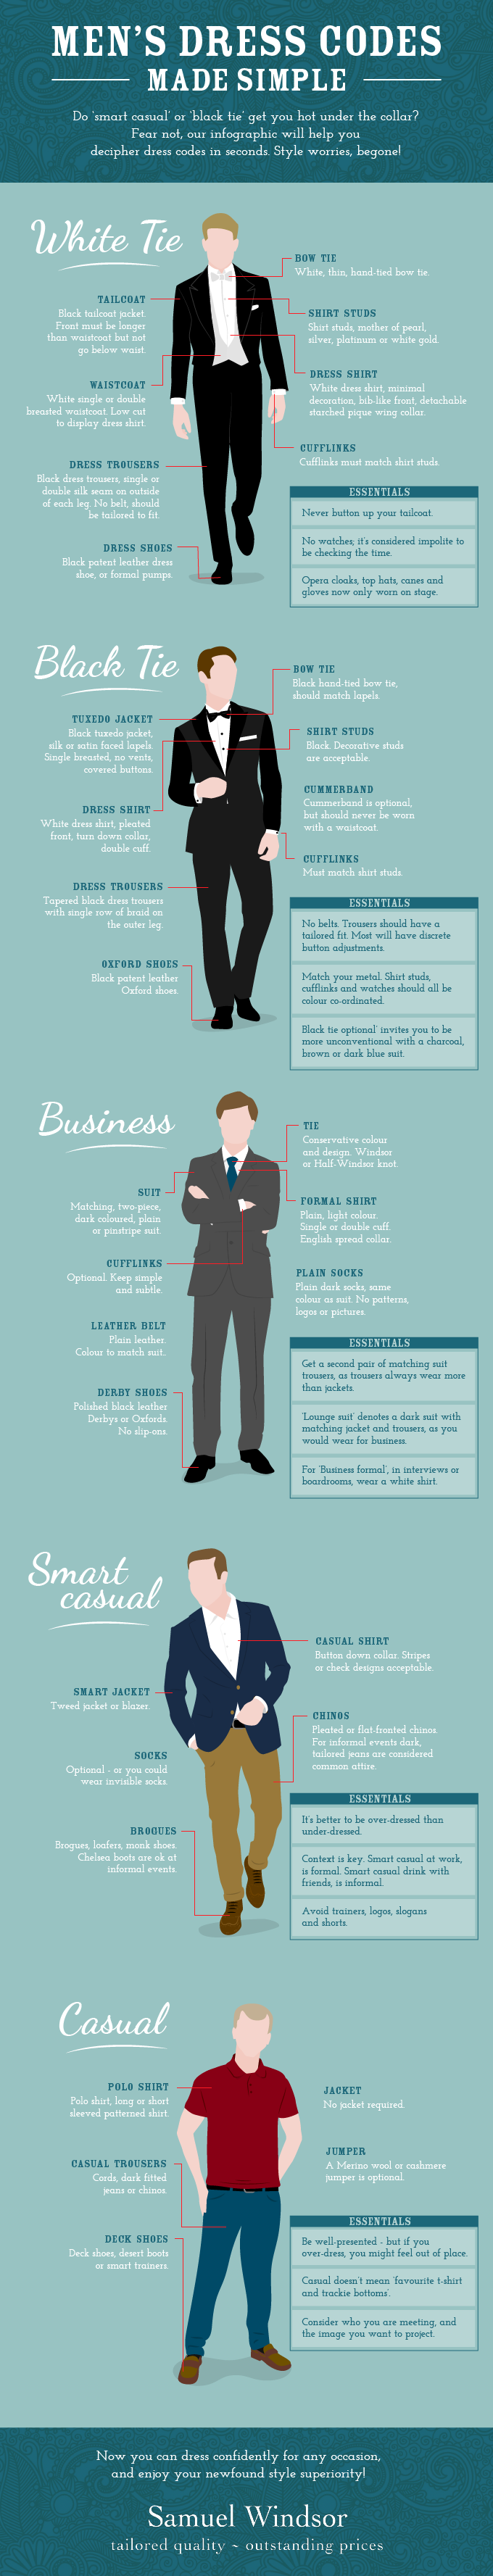 mens-dress-code-infographic.png